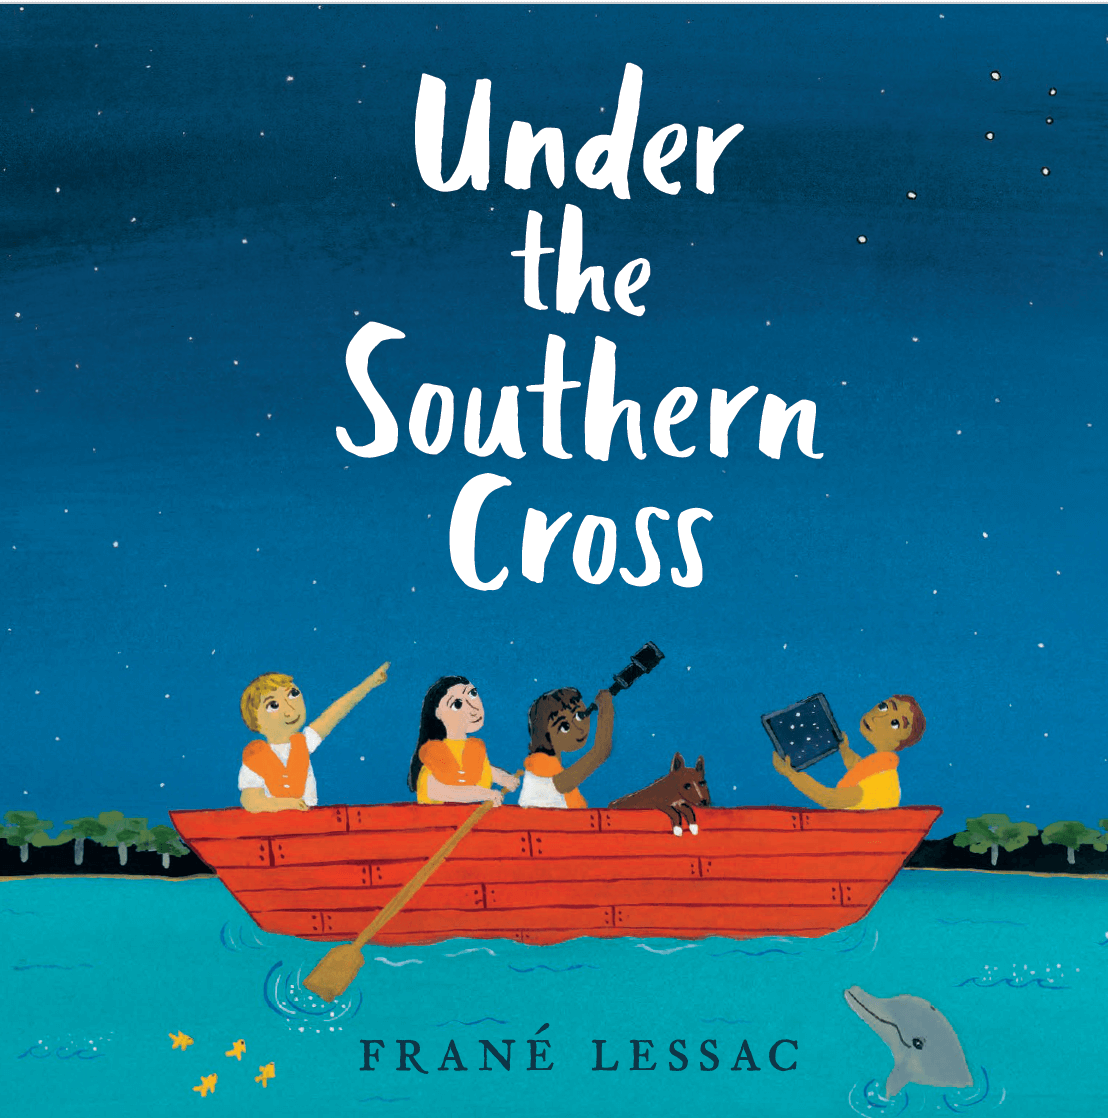 Under the Southern Cross - Frané Lessac